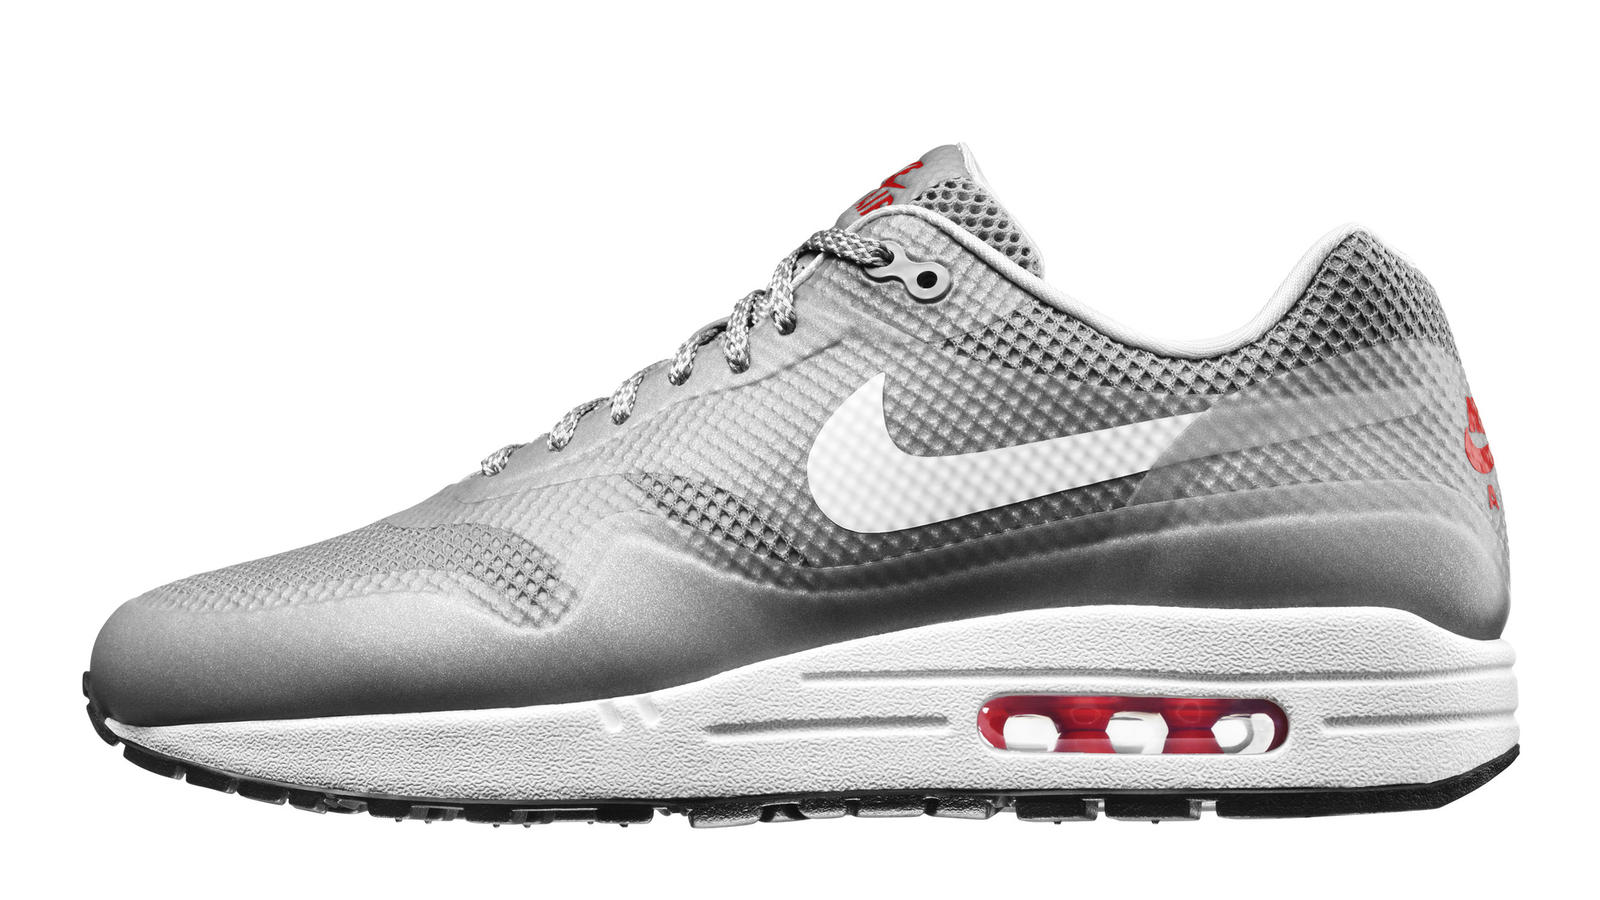 Light up the night in the Nike Air Max LE collection Nike News